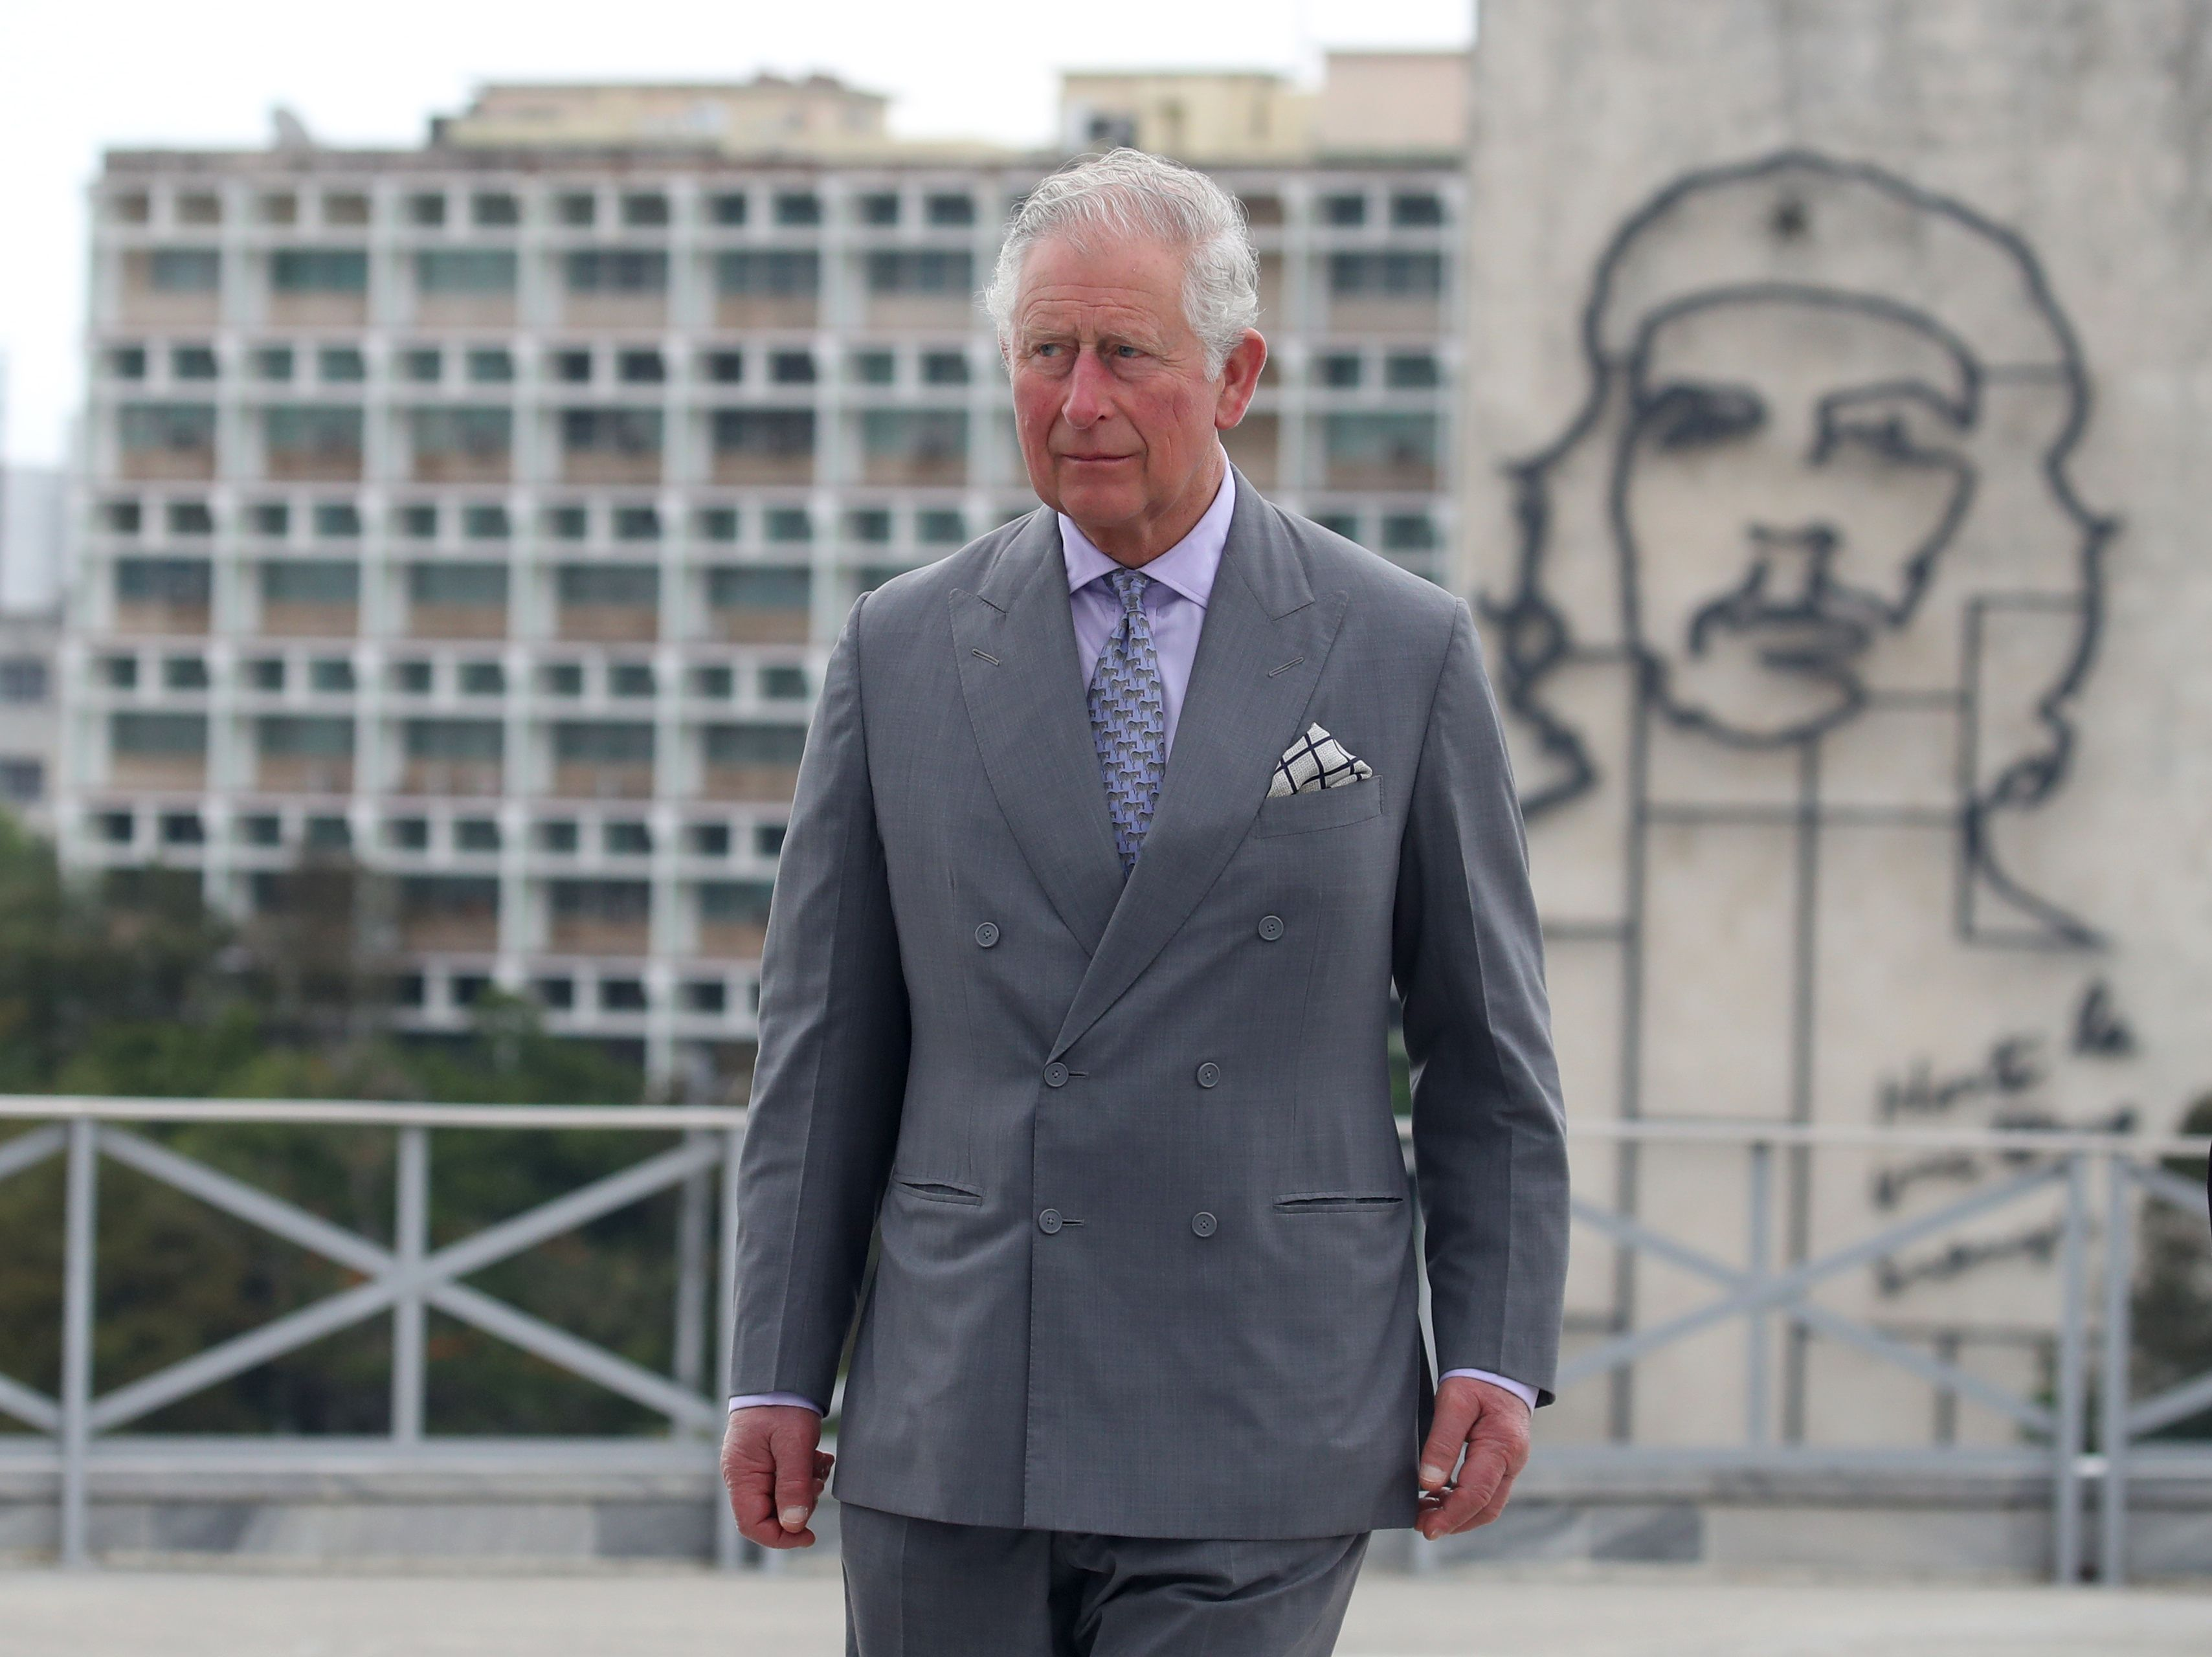 See All the Best Photos of Prince Charles and Camilla's Historic Trip to Cuba